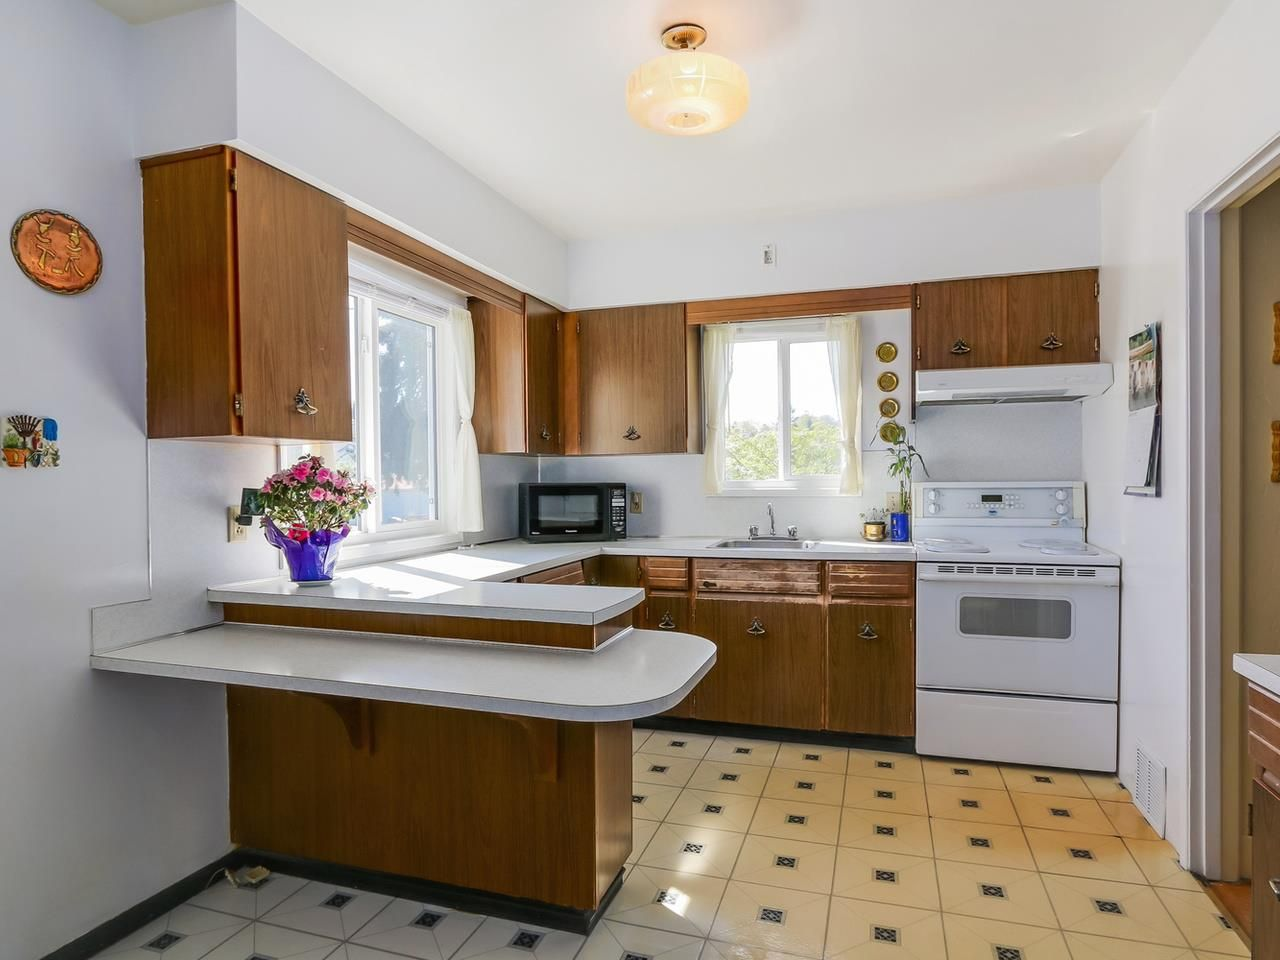 Photo 11: Photos: 2796 W 21ST Avenue in Vancouver: Arbutus House for sale (Vancouver West)  : MLS®# R2078868